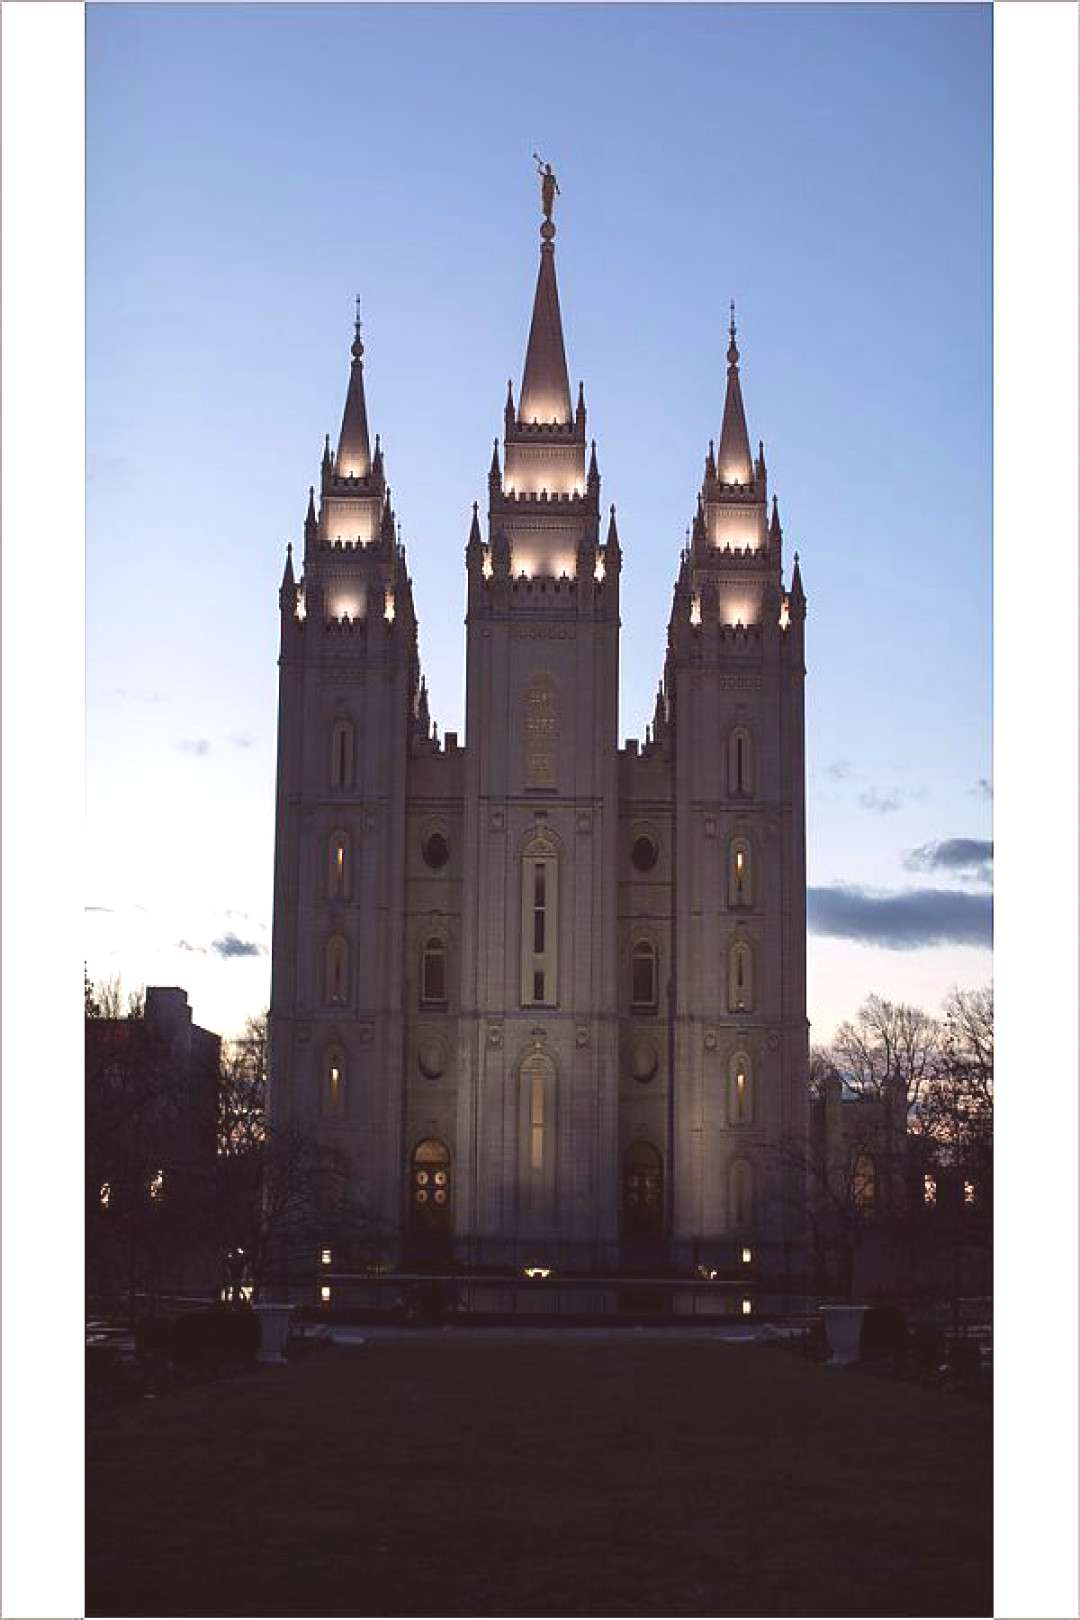 Photograph-The Mormon Temple is shown at Temple Square downtown Salt Lake City-25x20cm Print made i